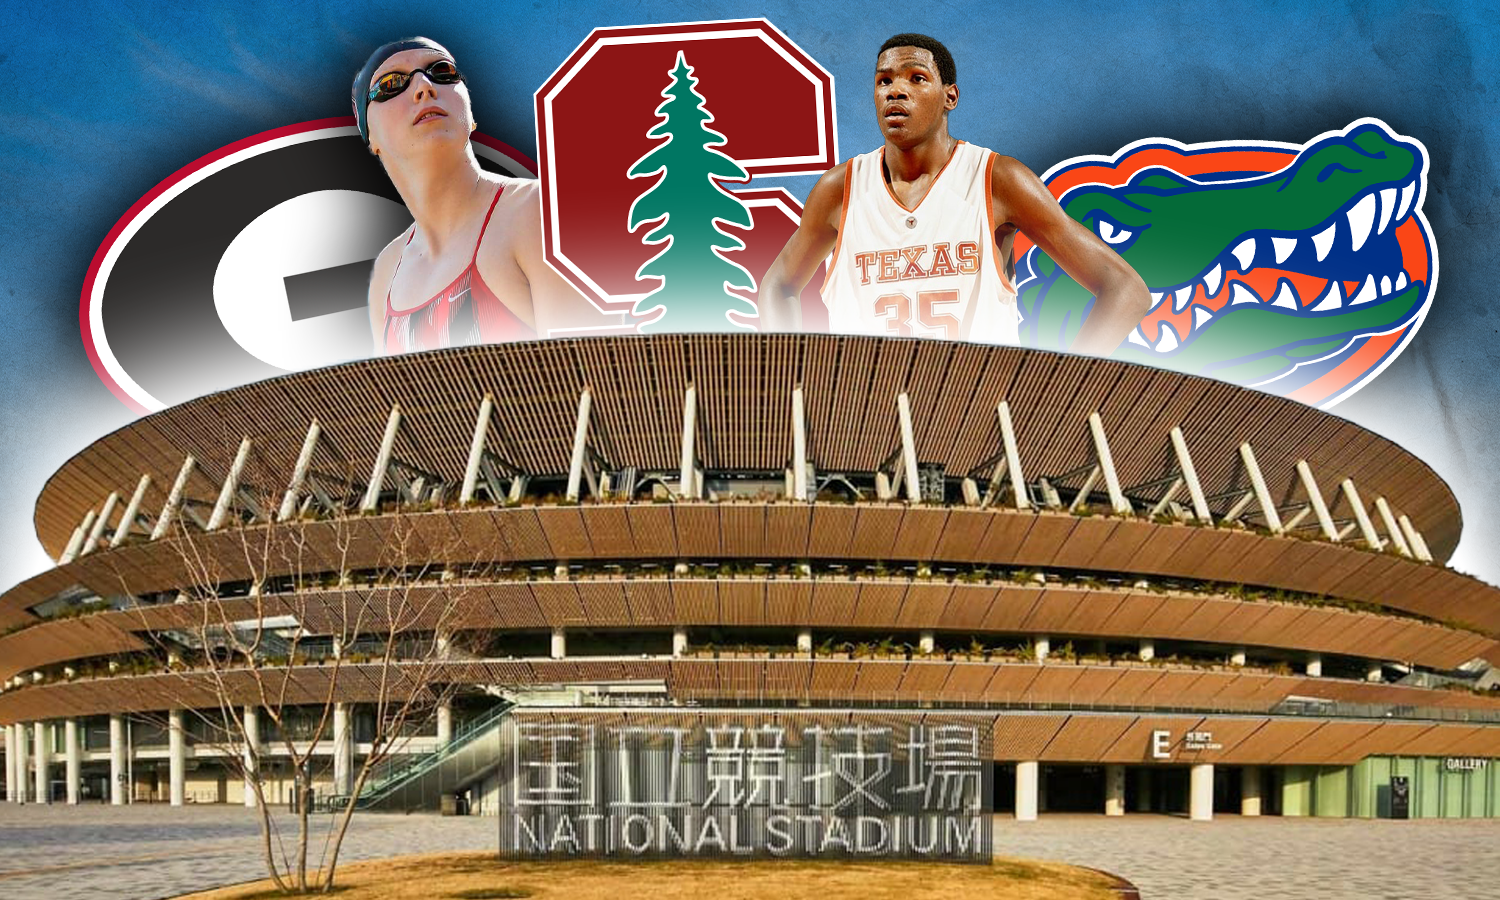 Which universities have the most athletes in the Tokyo Olympics?